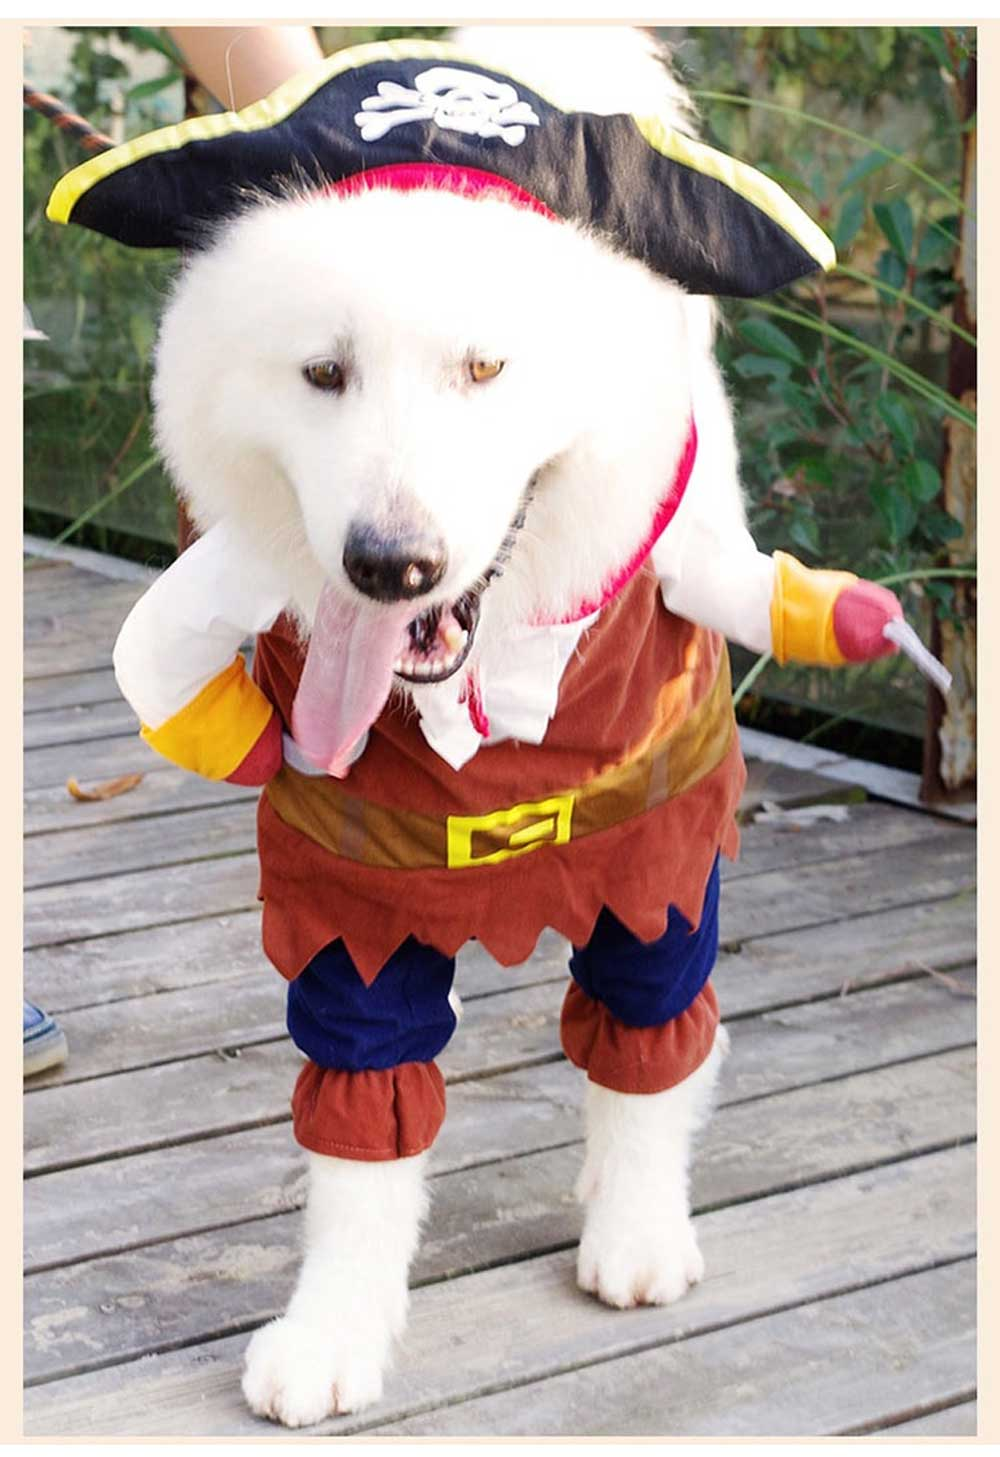 Pirate Costume for Dogs, Halloween Days Dog Clothes Pet Costumes  8